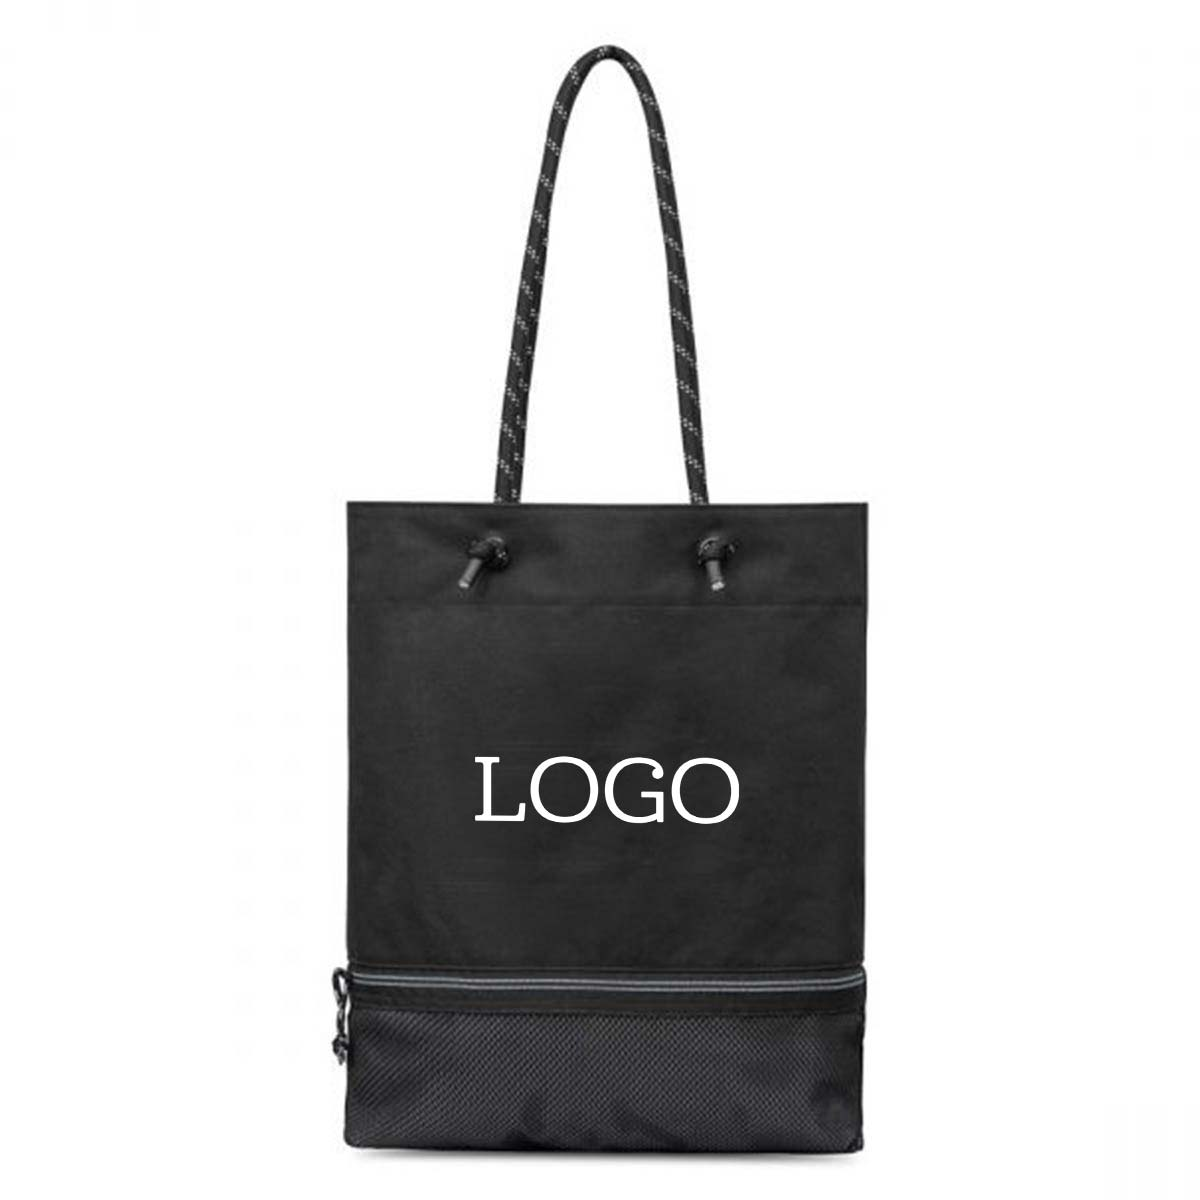 250843 odell tote one color imprint one location